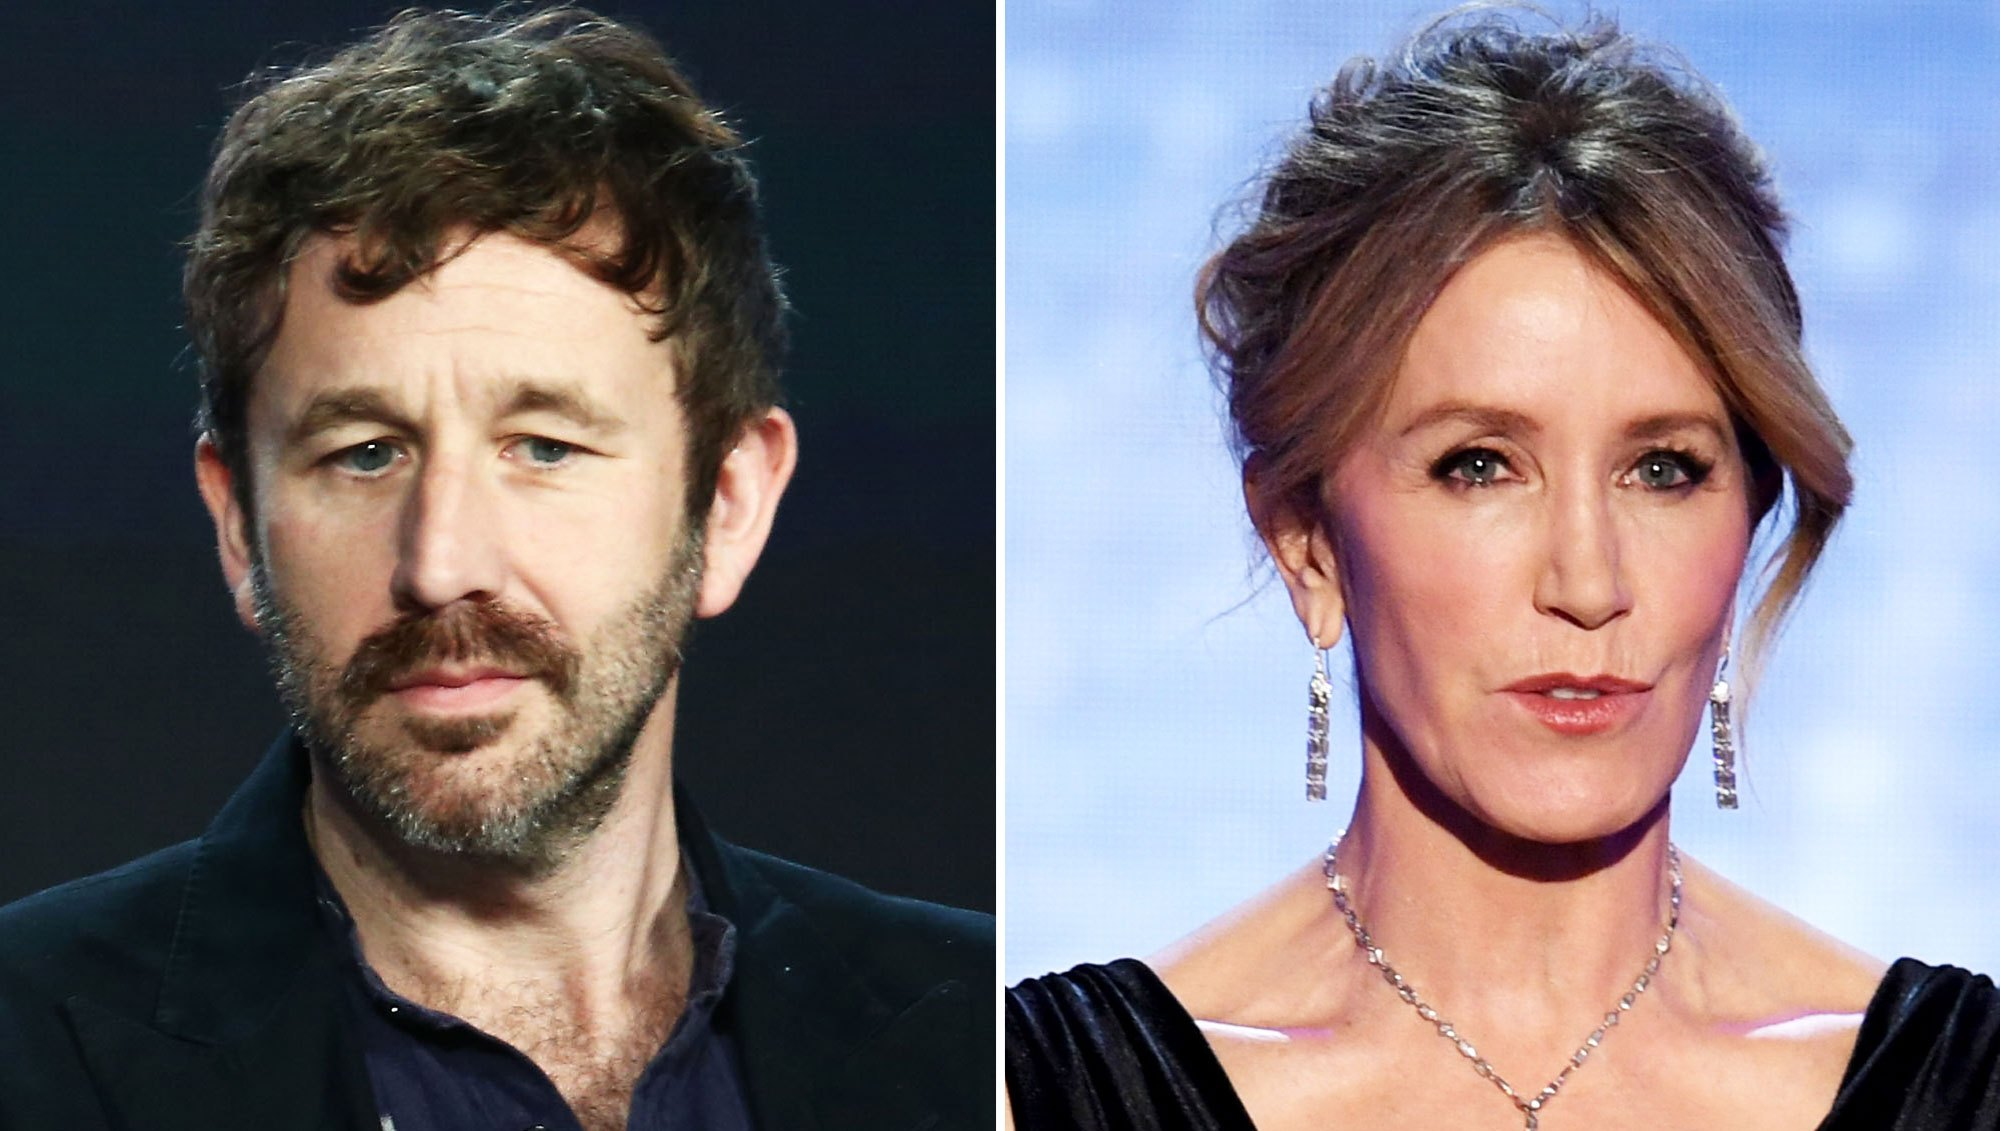 Chris O'Dowd Calls Costar Felicity Huffman's College Scandal a 'Very Trying Time' for Her Family